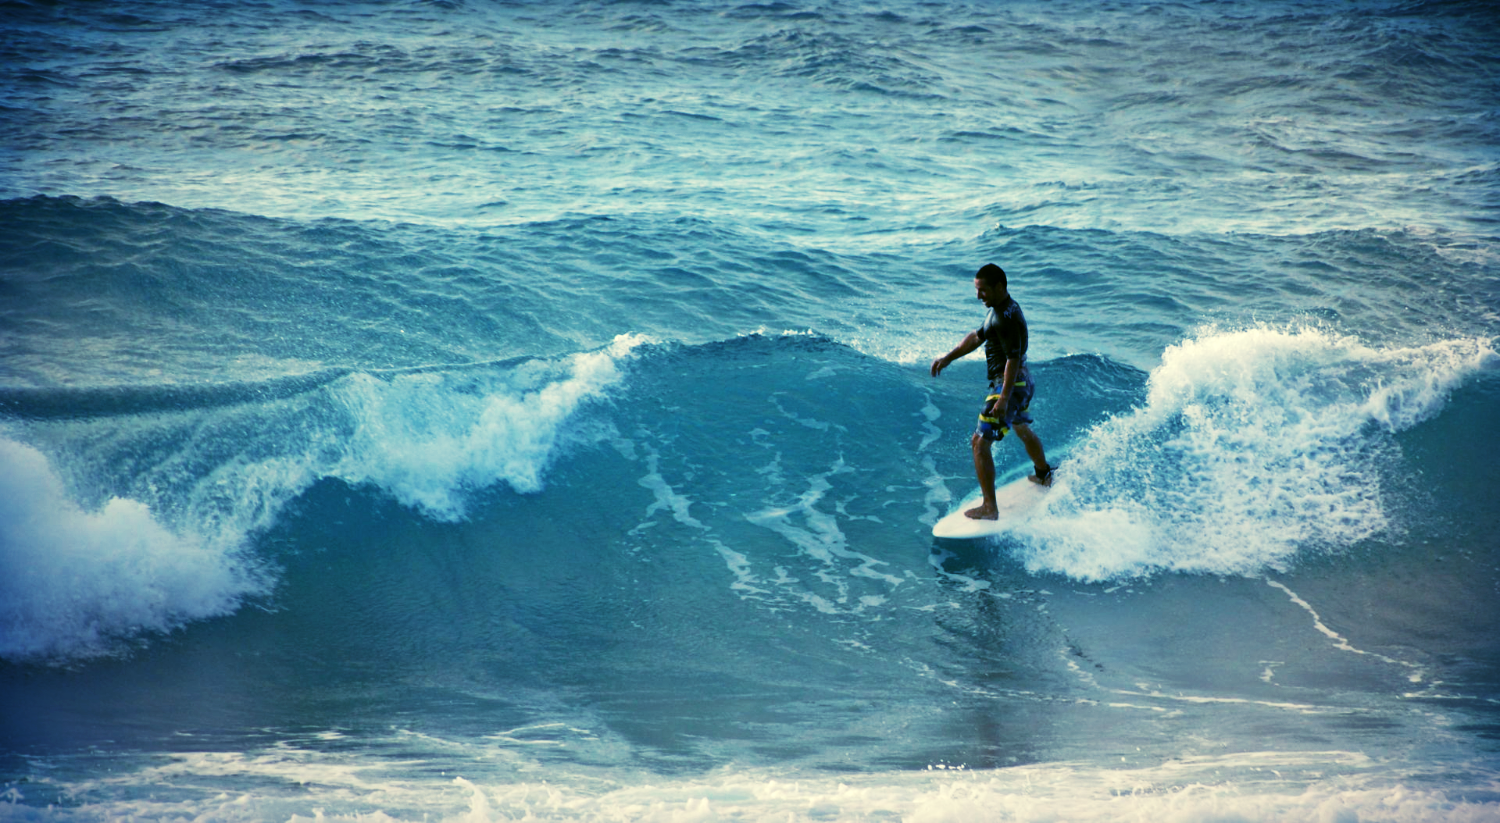 Holiday in Ikaria - Surfing